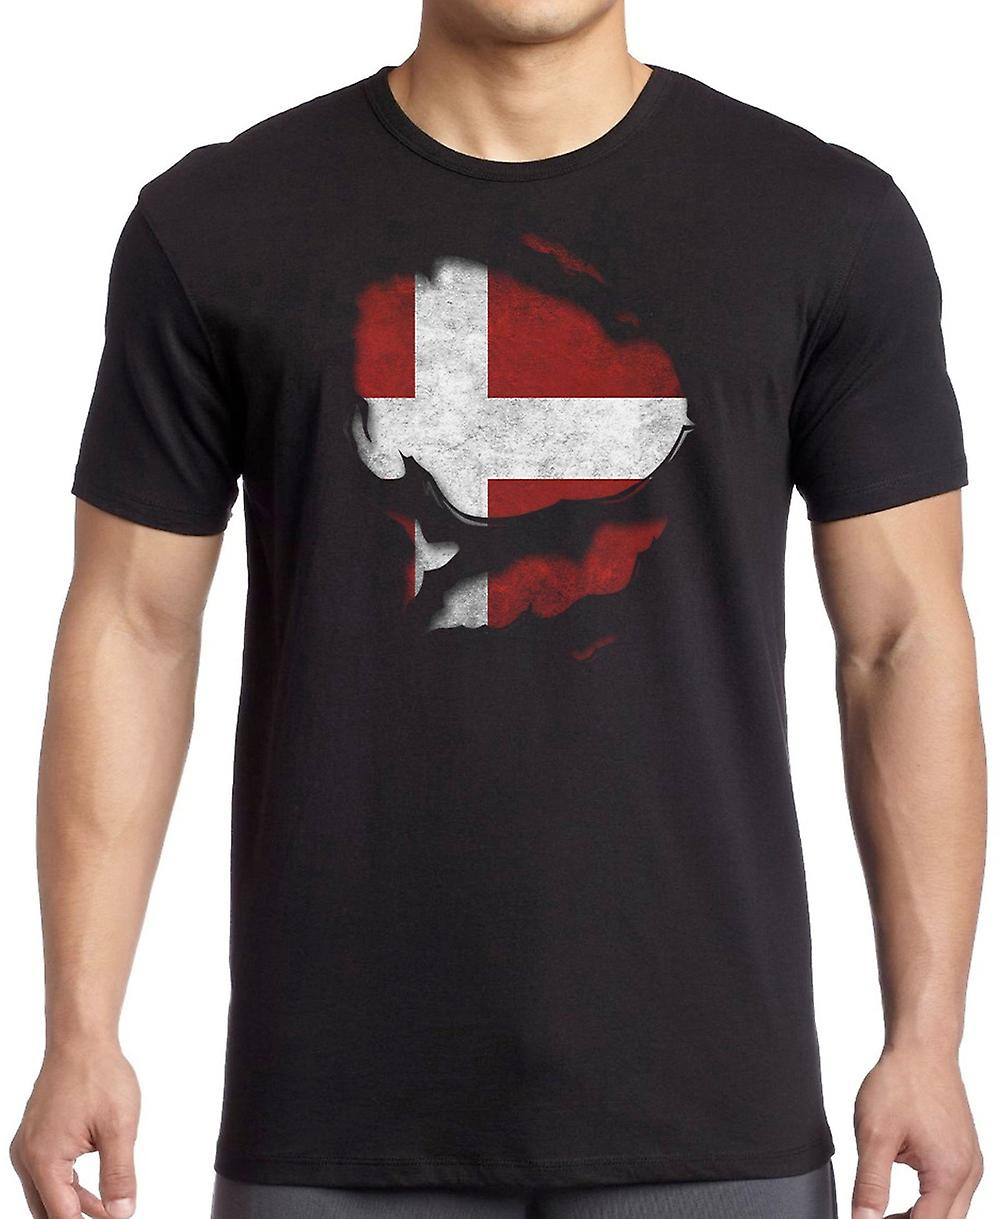 EU European Ripped Effect Under Shirt T Shirt